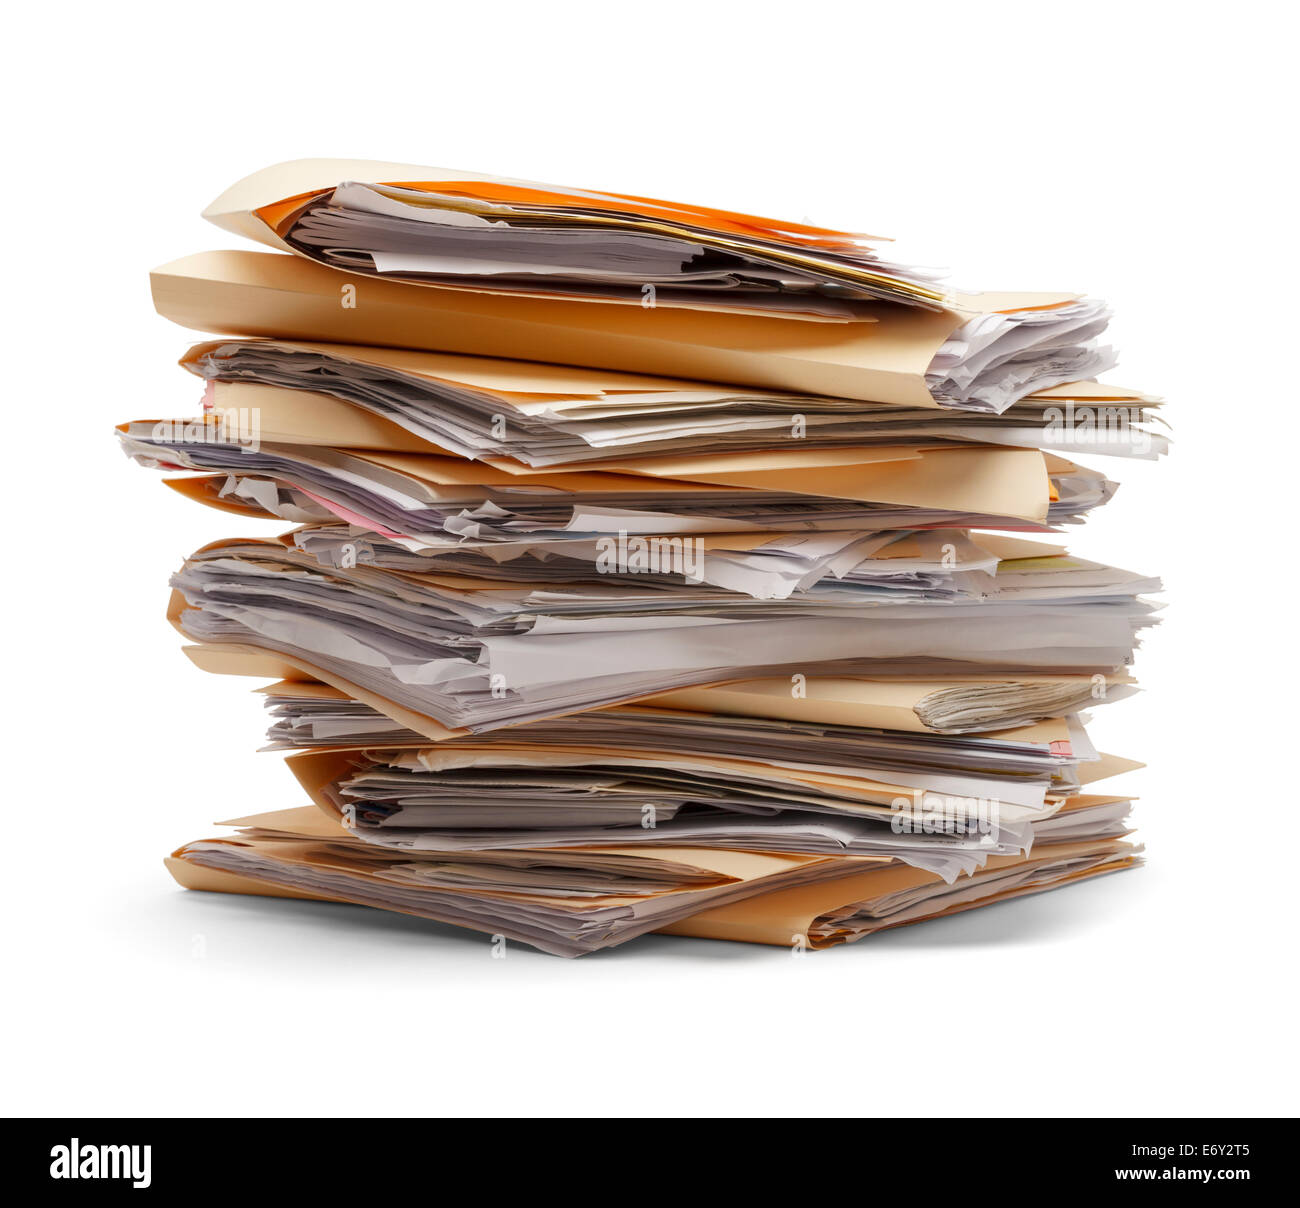 Files stacking up in a messy order isolated on white background. - Stock Image